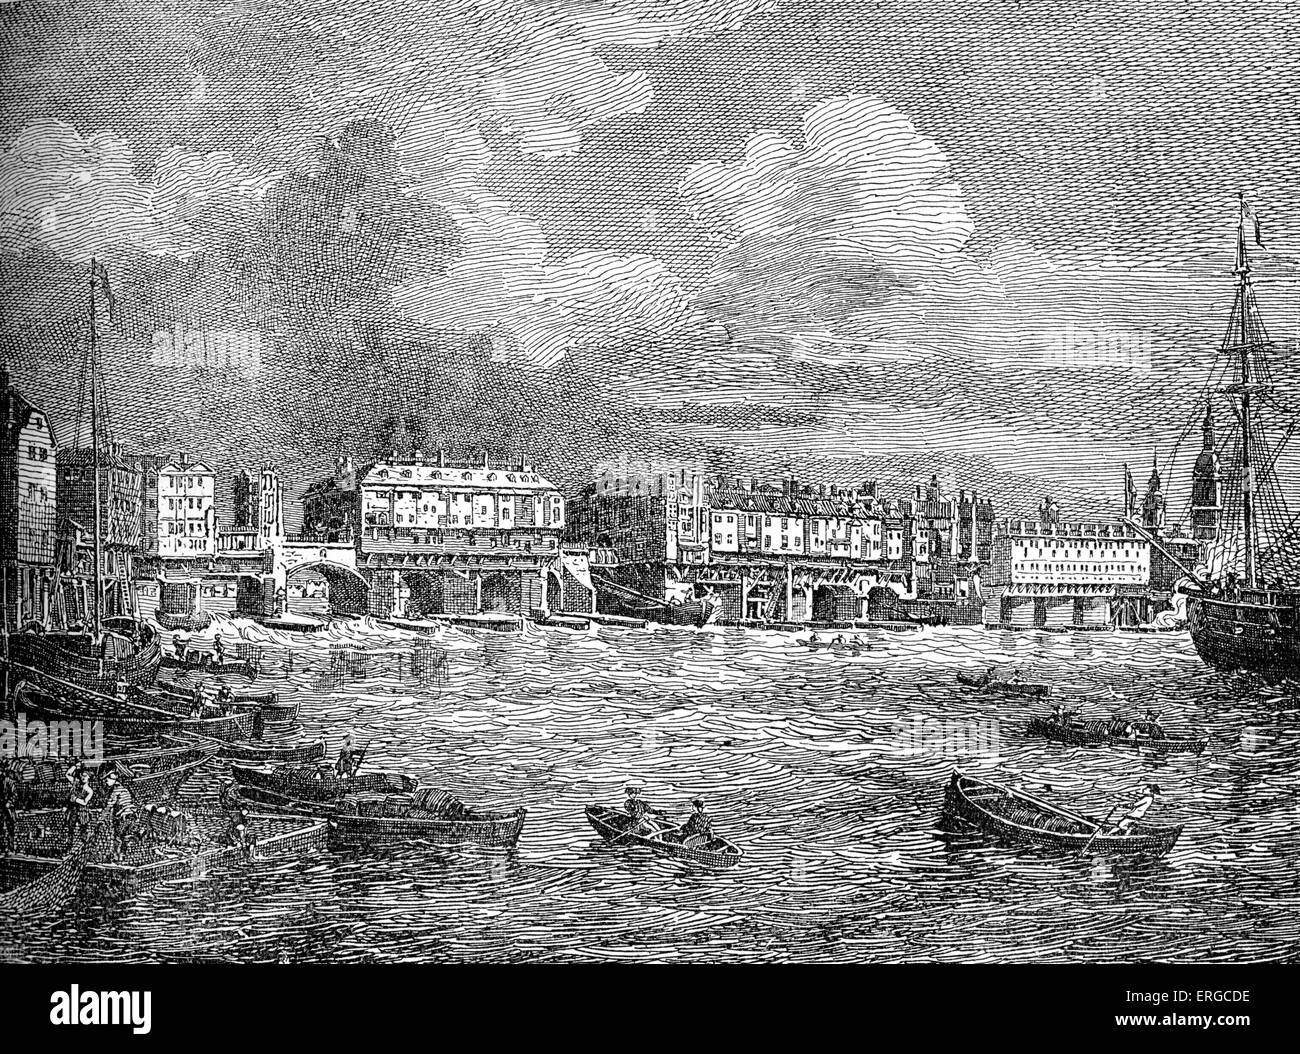 London Bridge, London, 1760 - view of the river Thames, riverside buildings and boats. - Stock Image